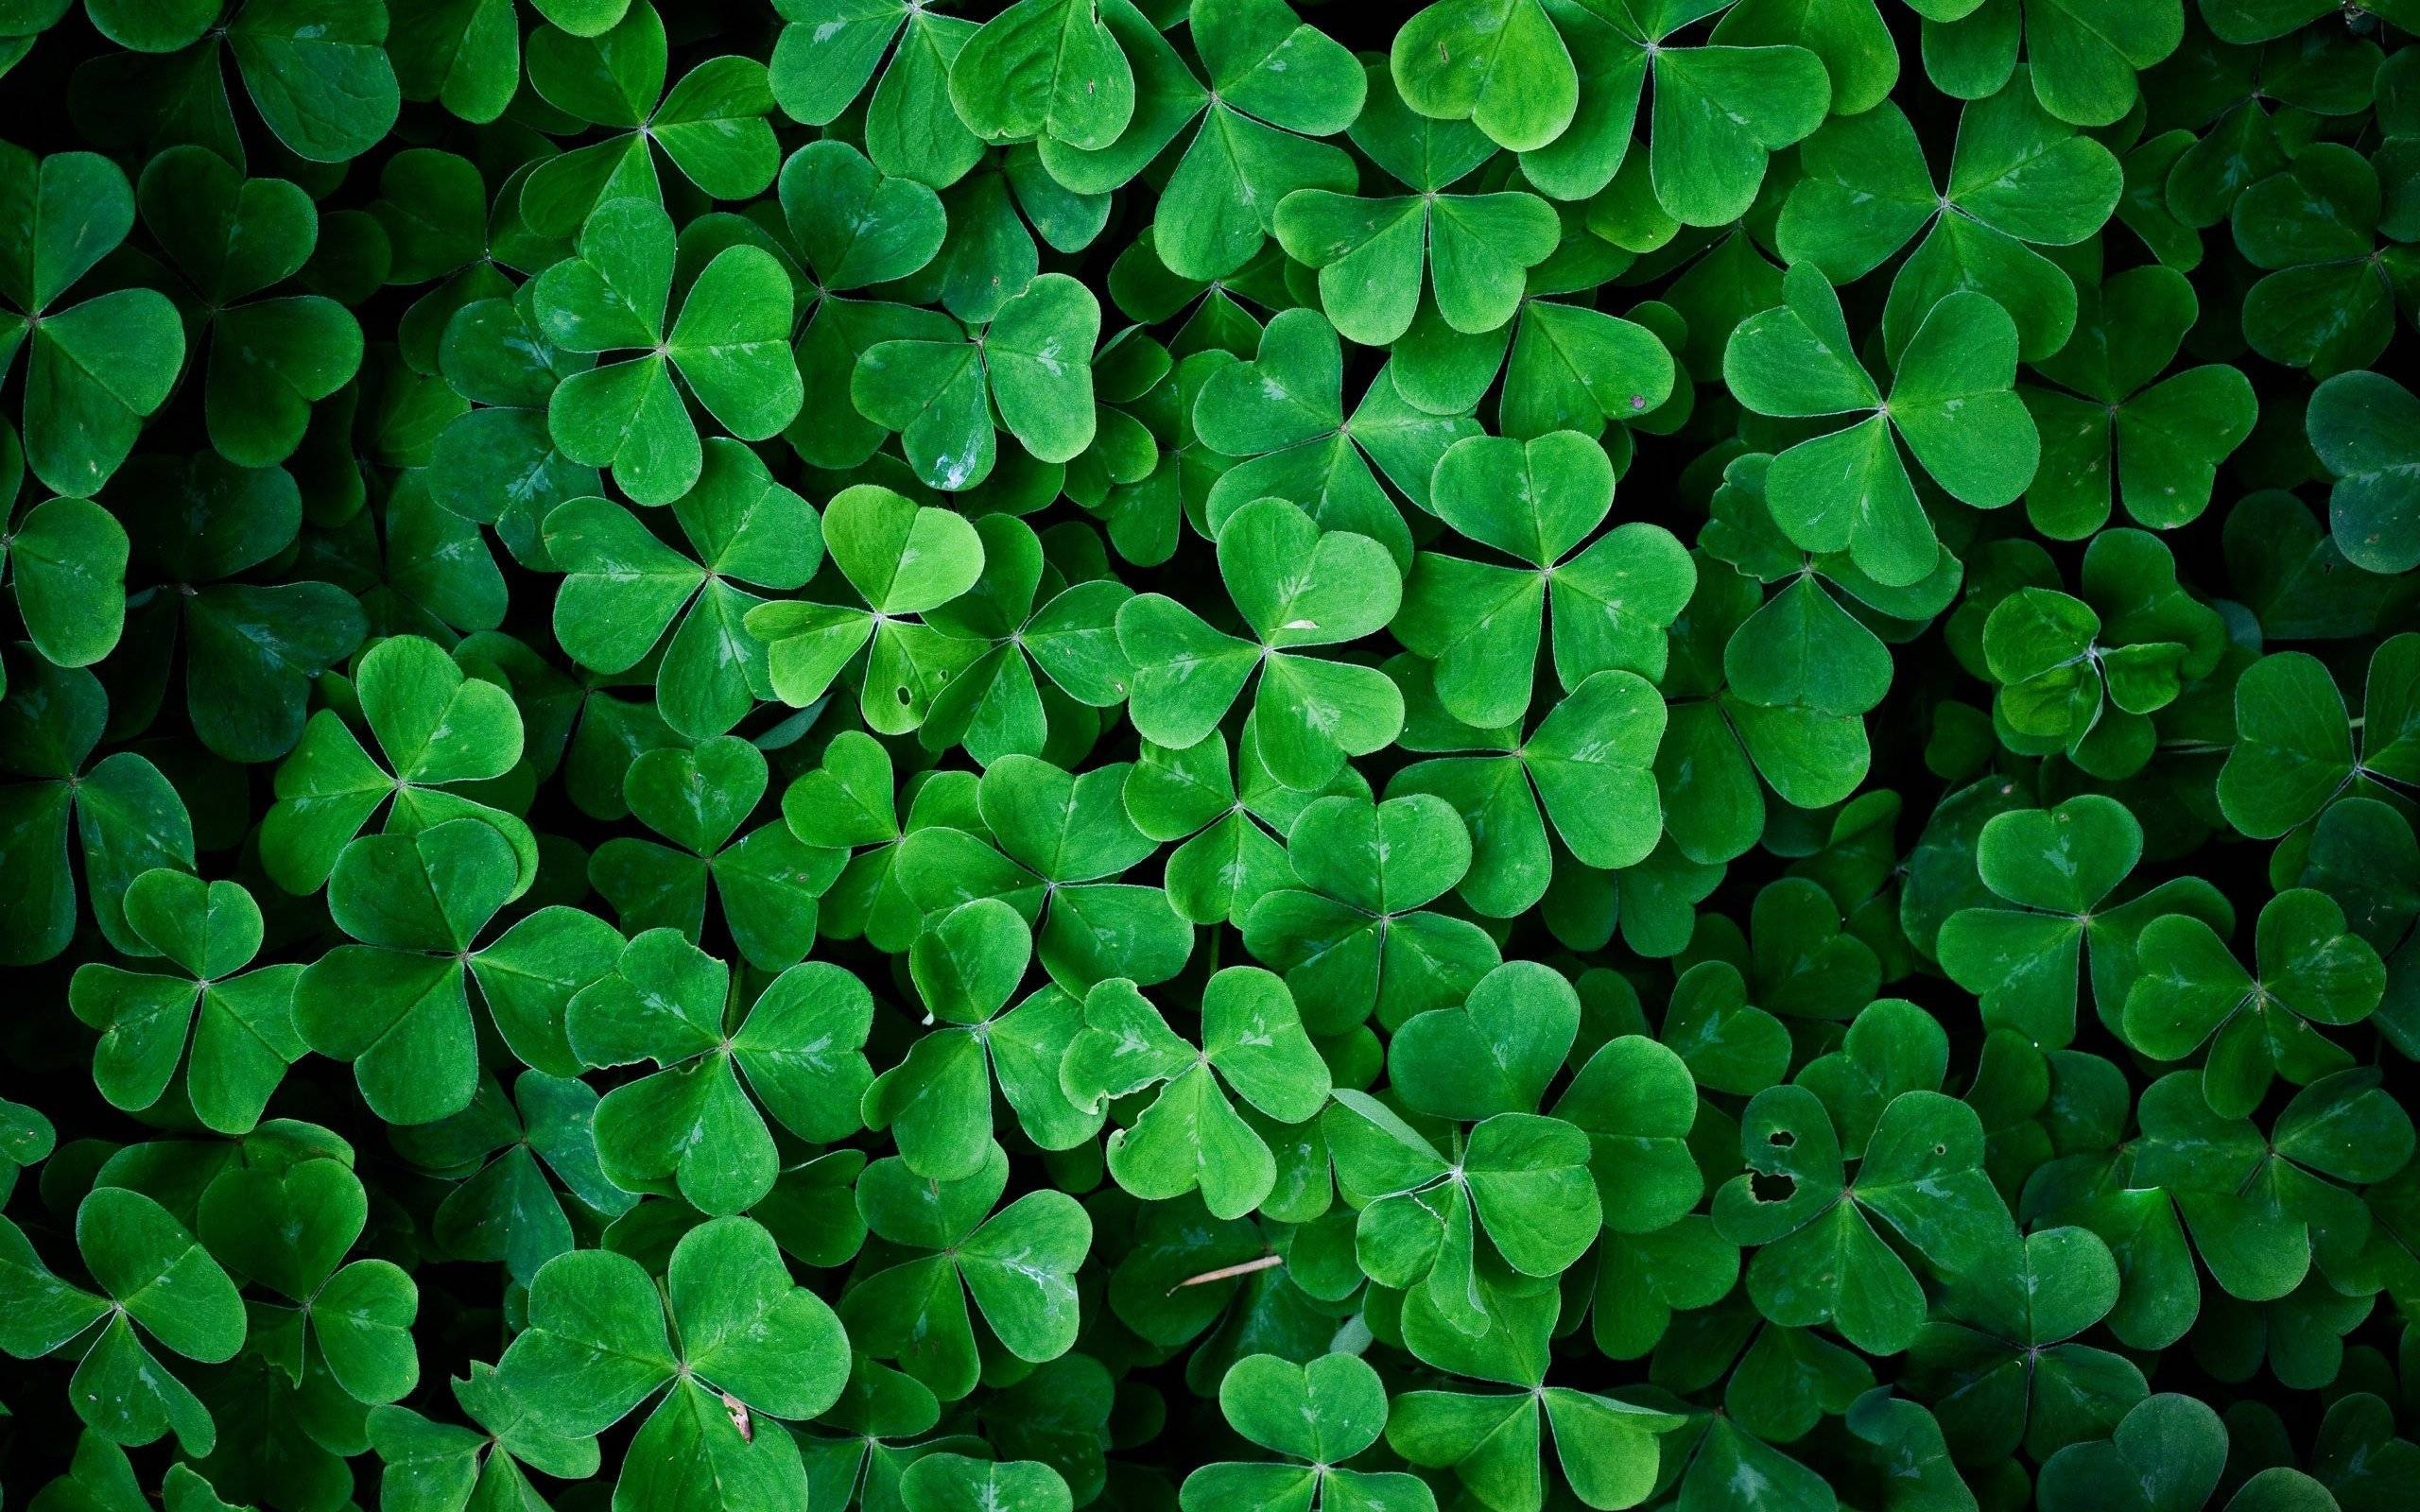 shamrock pattern wallpaper 1366x768 - photo #28